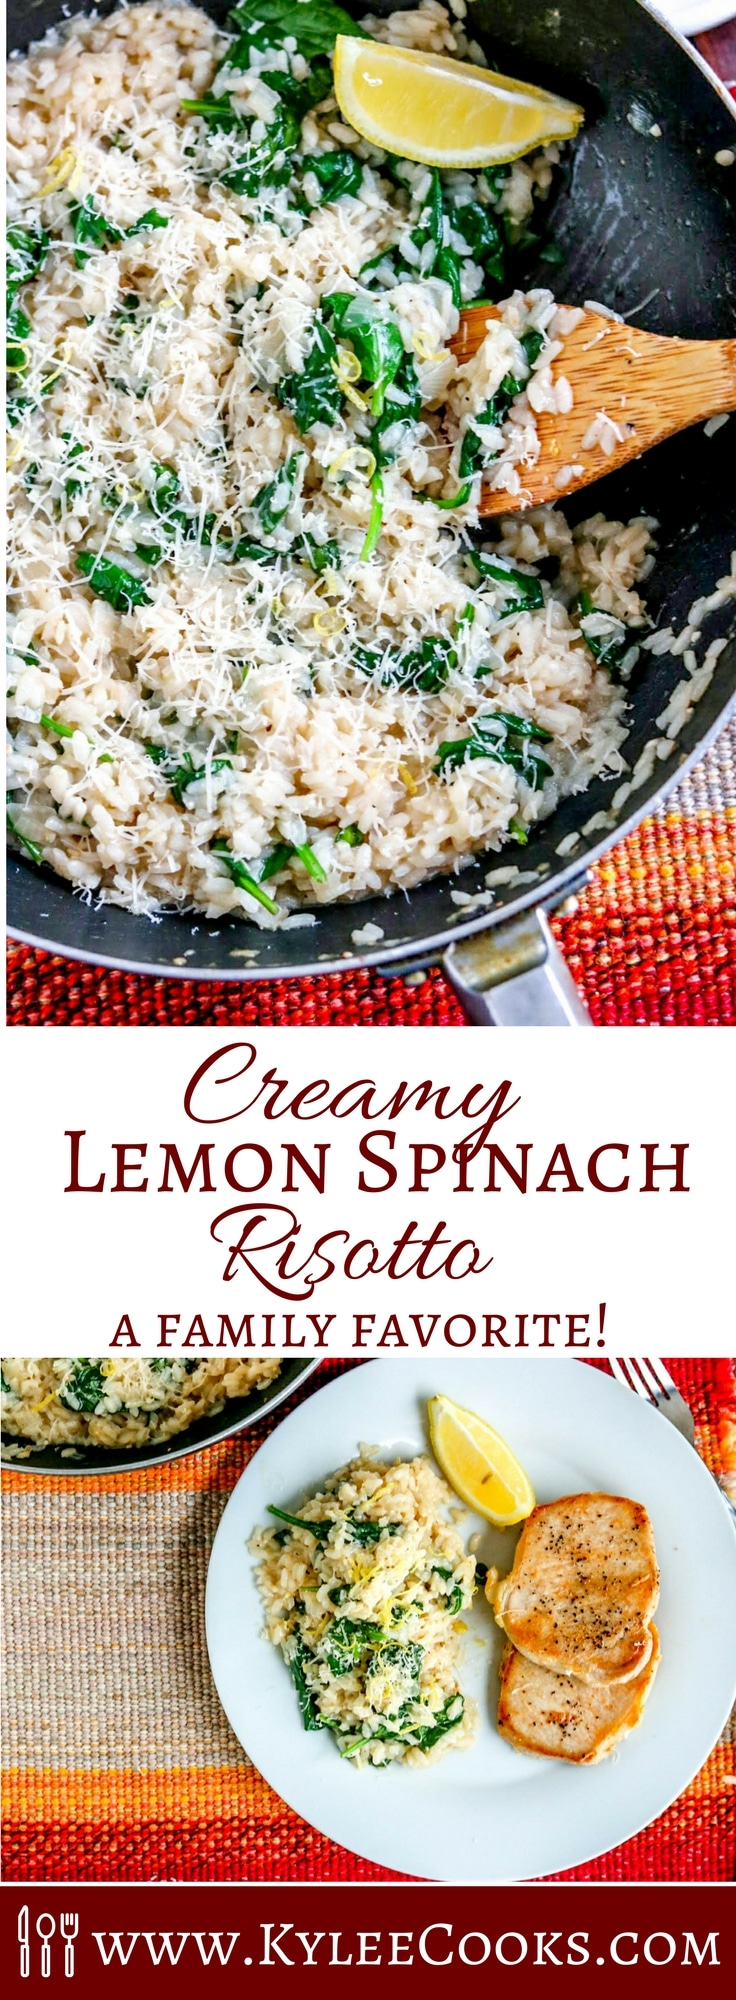 A delicious side, or a main meal – this creamy Lemon Spinach Risotto is packed with flavor and super easy to make. Adults AND kids love it! #risotto #recipe